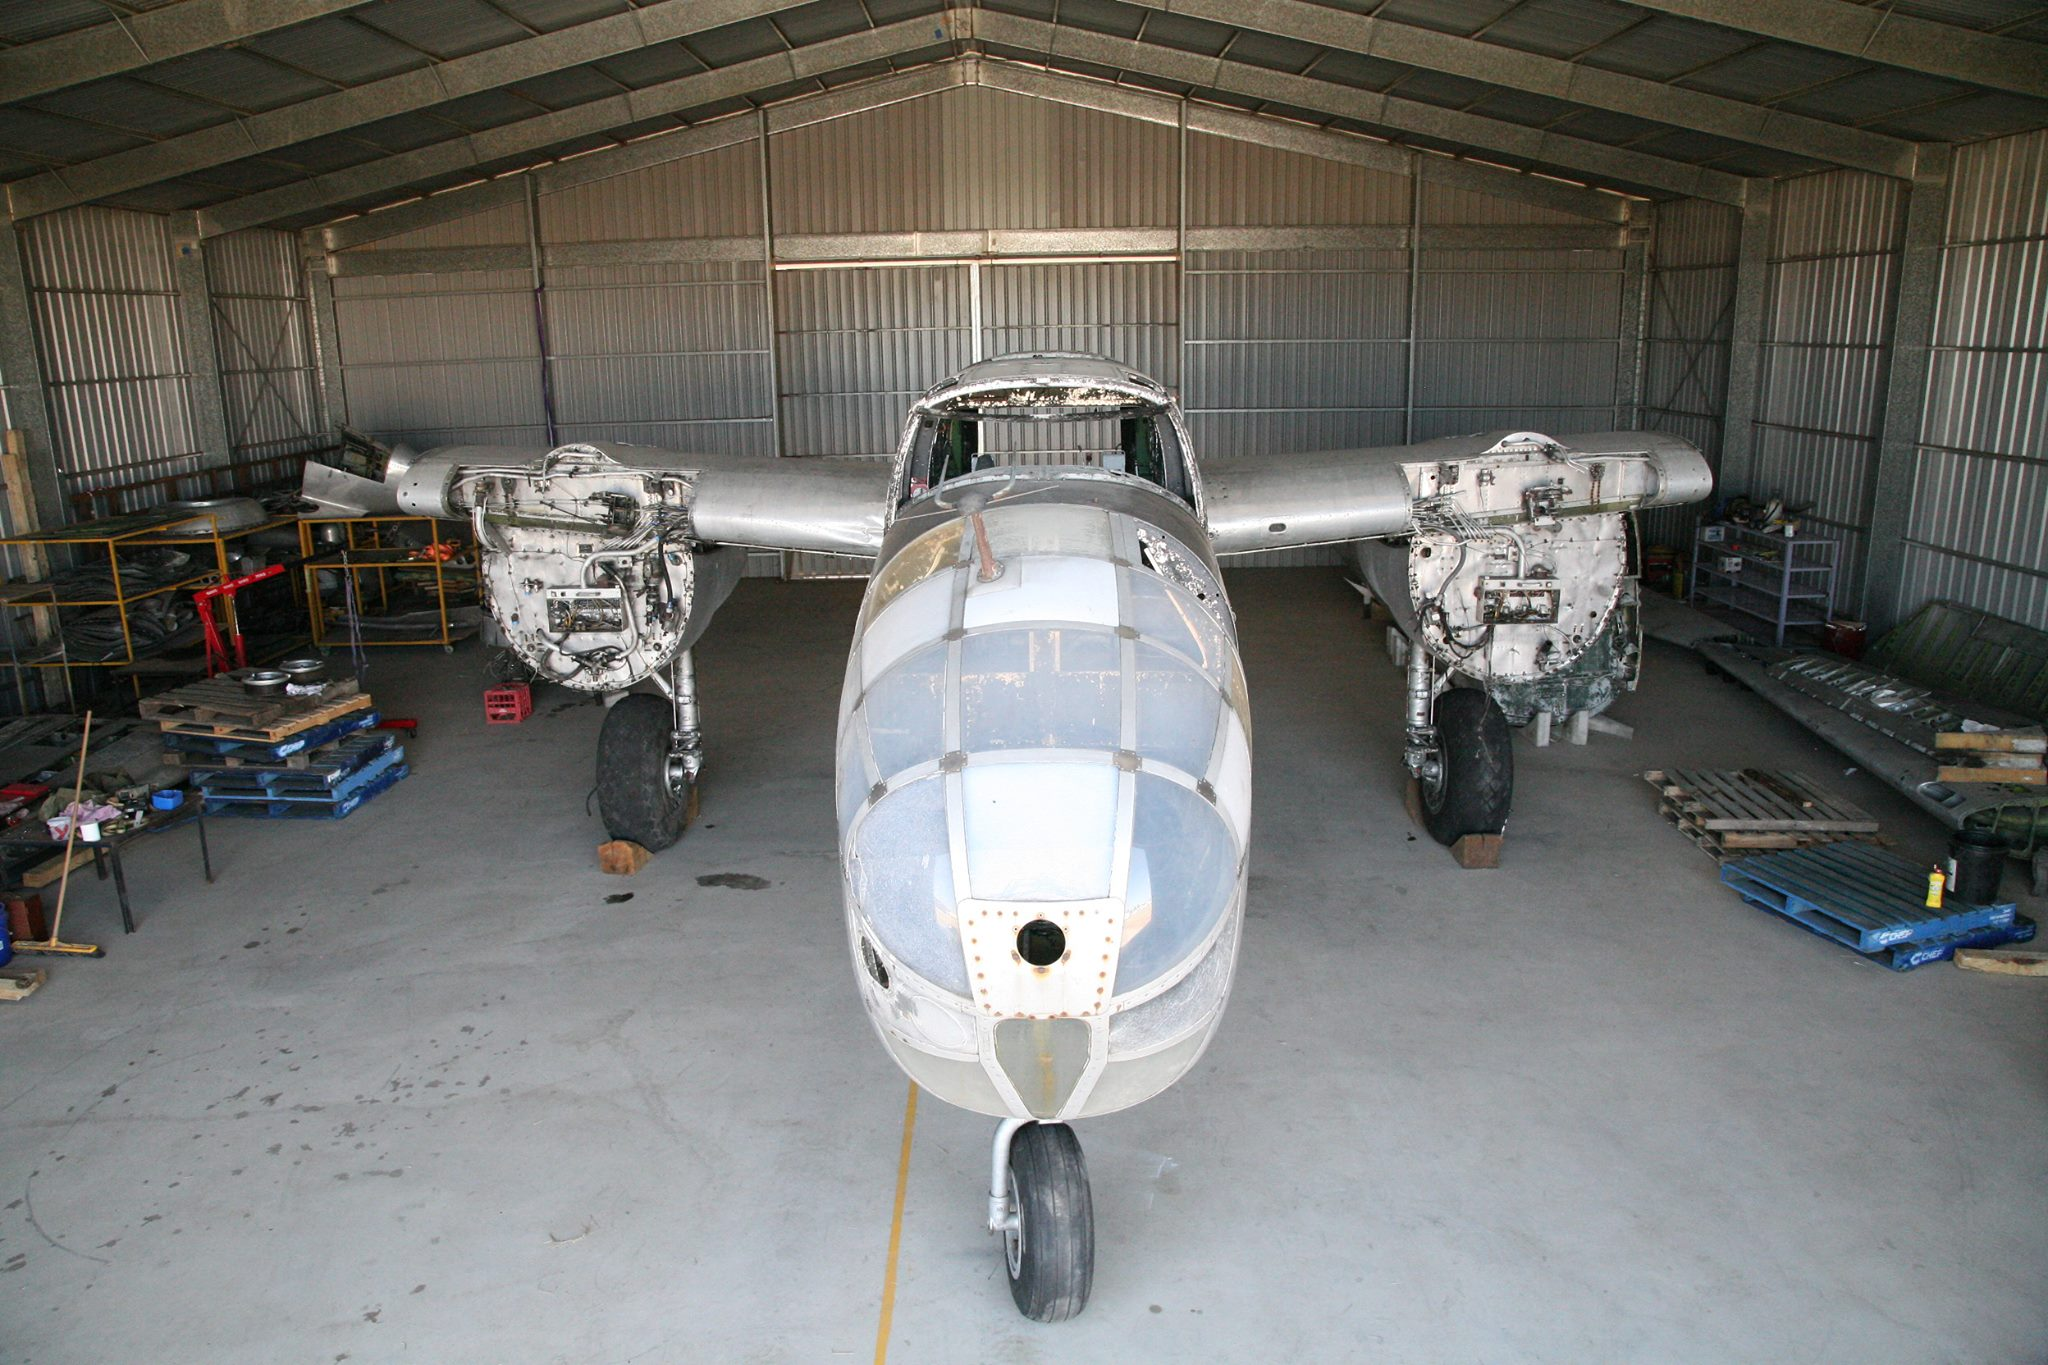 Reevers' B-25J before the real restoration work commenced. (photo via Reevers)